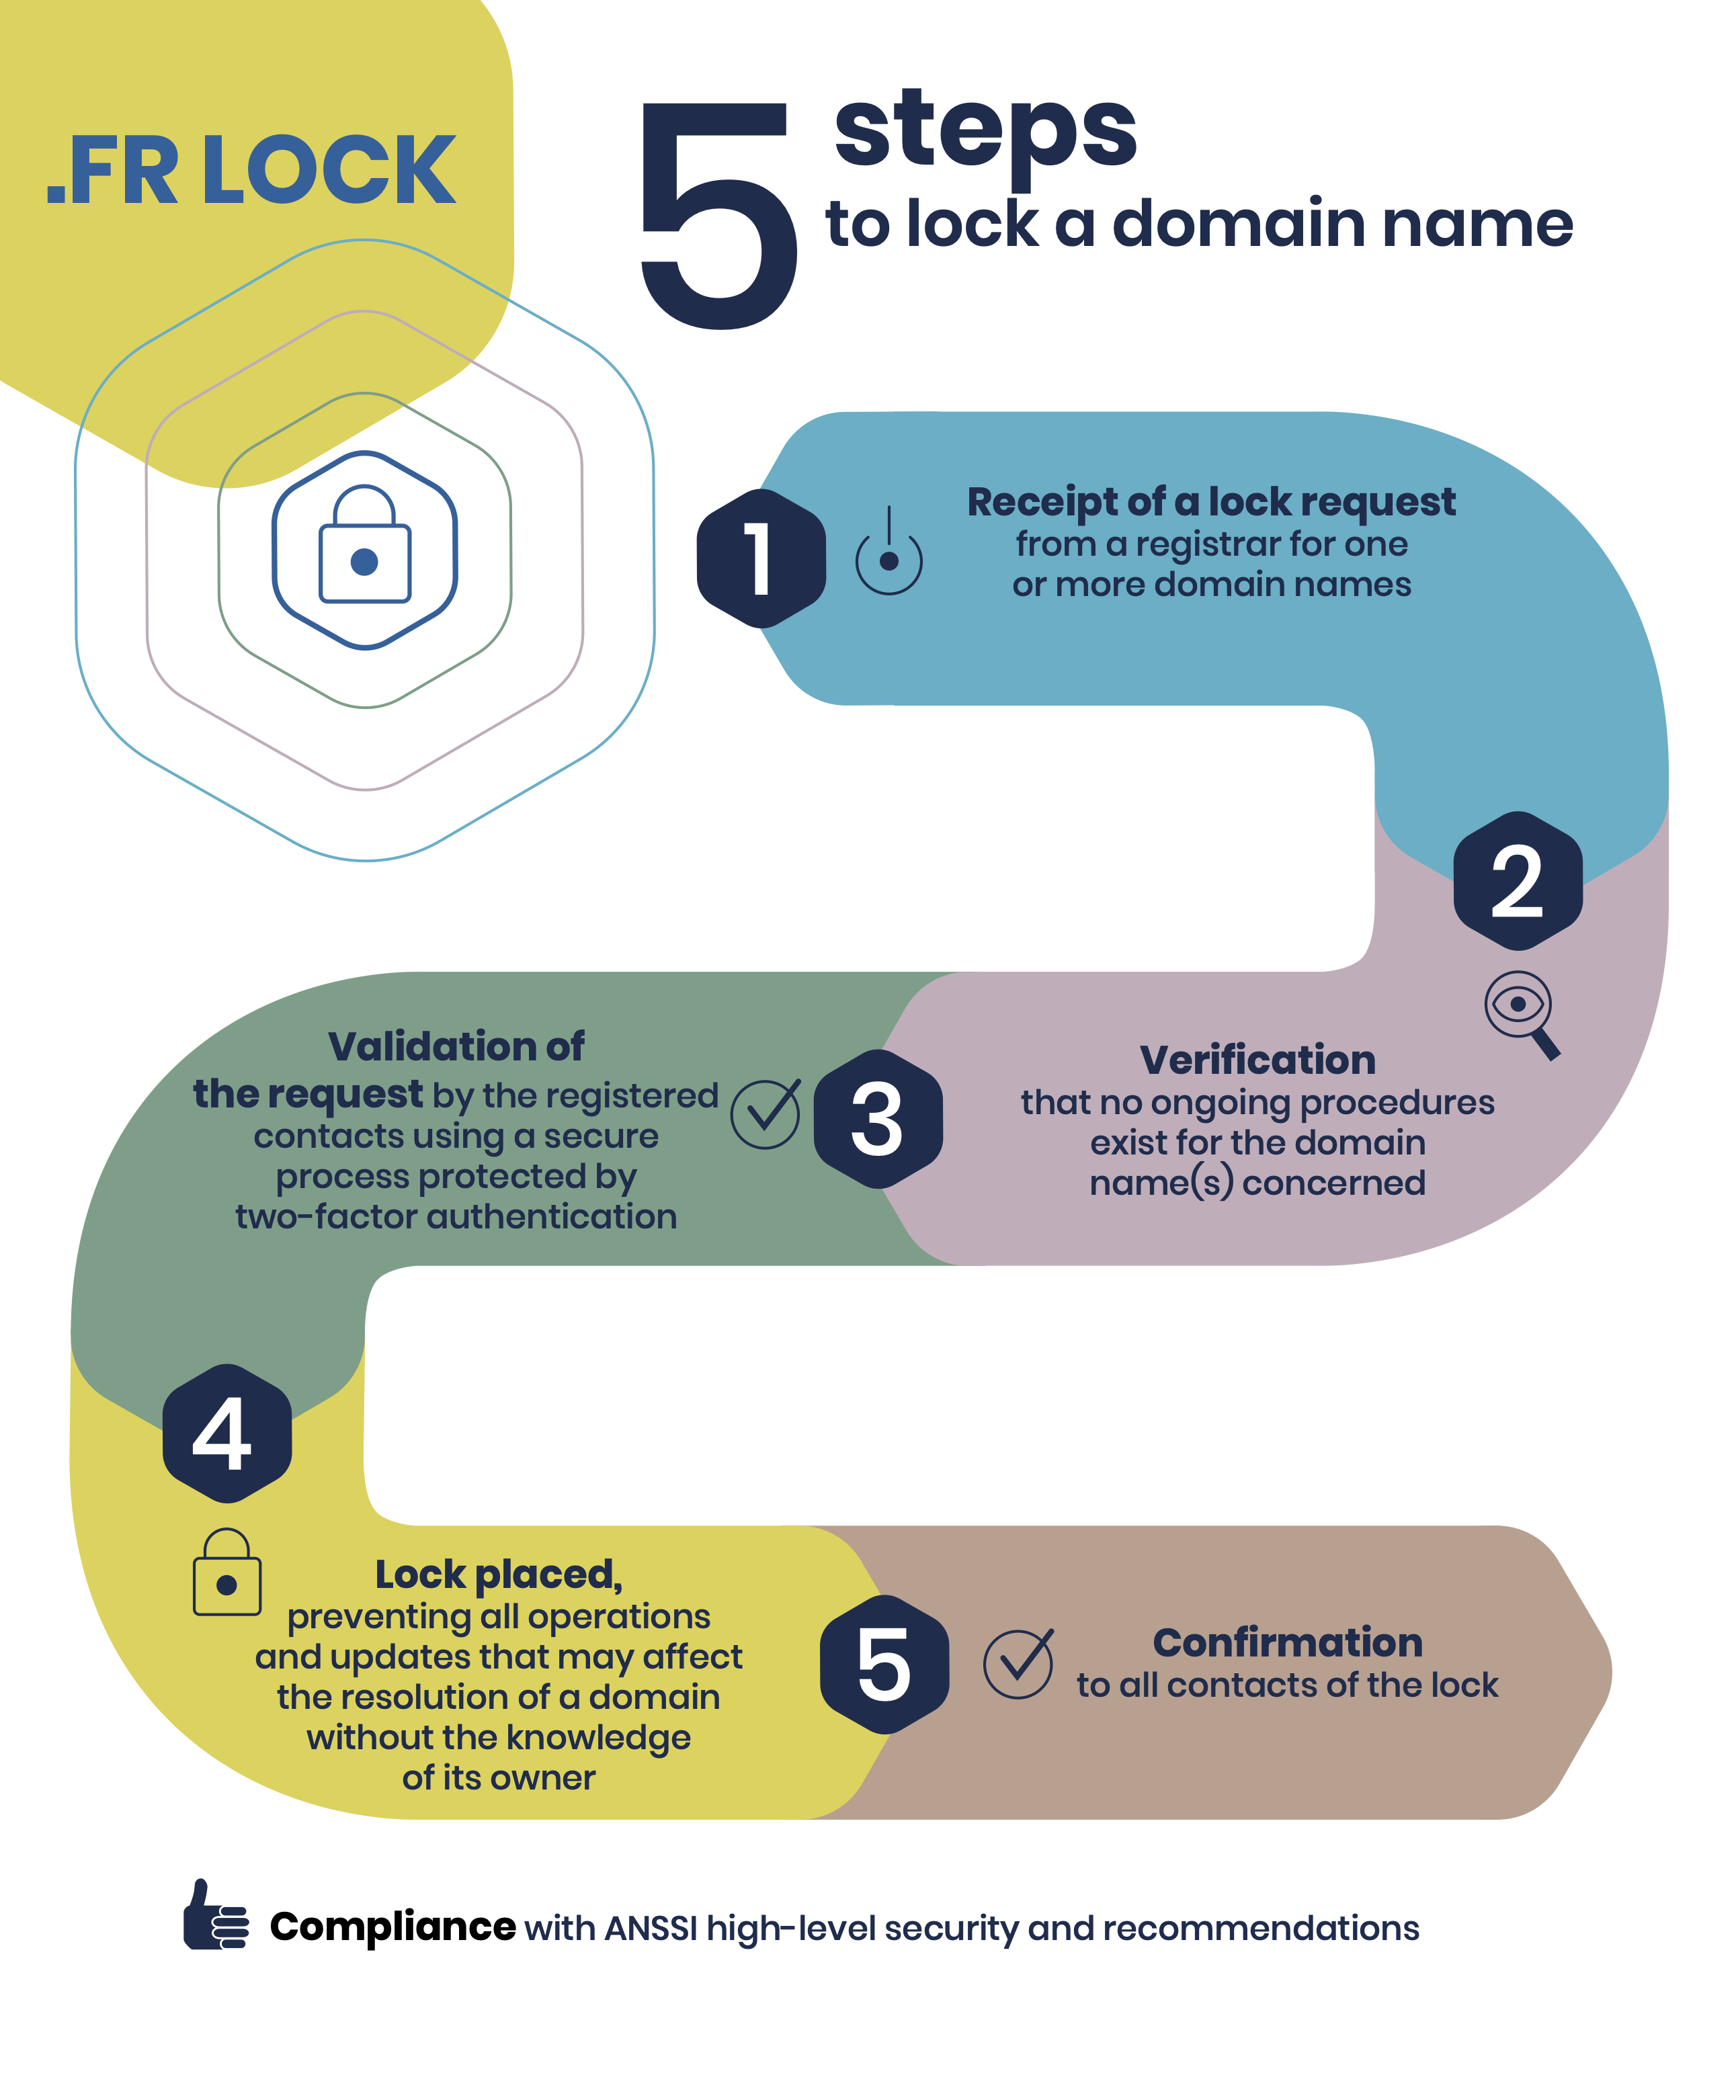 .FR Lock : 5 steps to lock a domain name